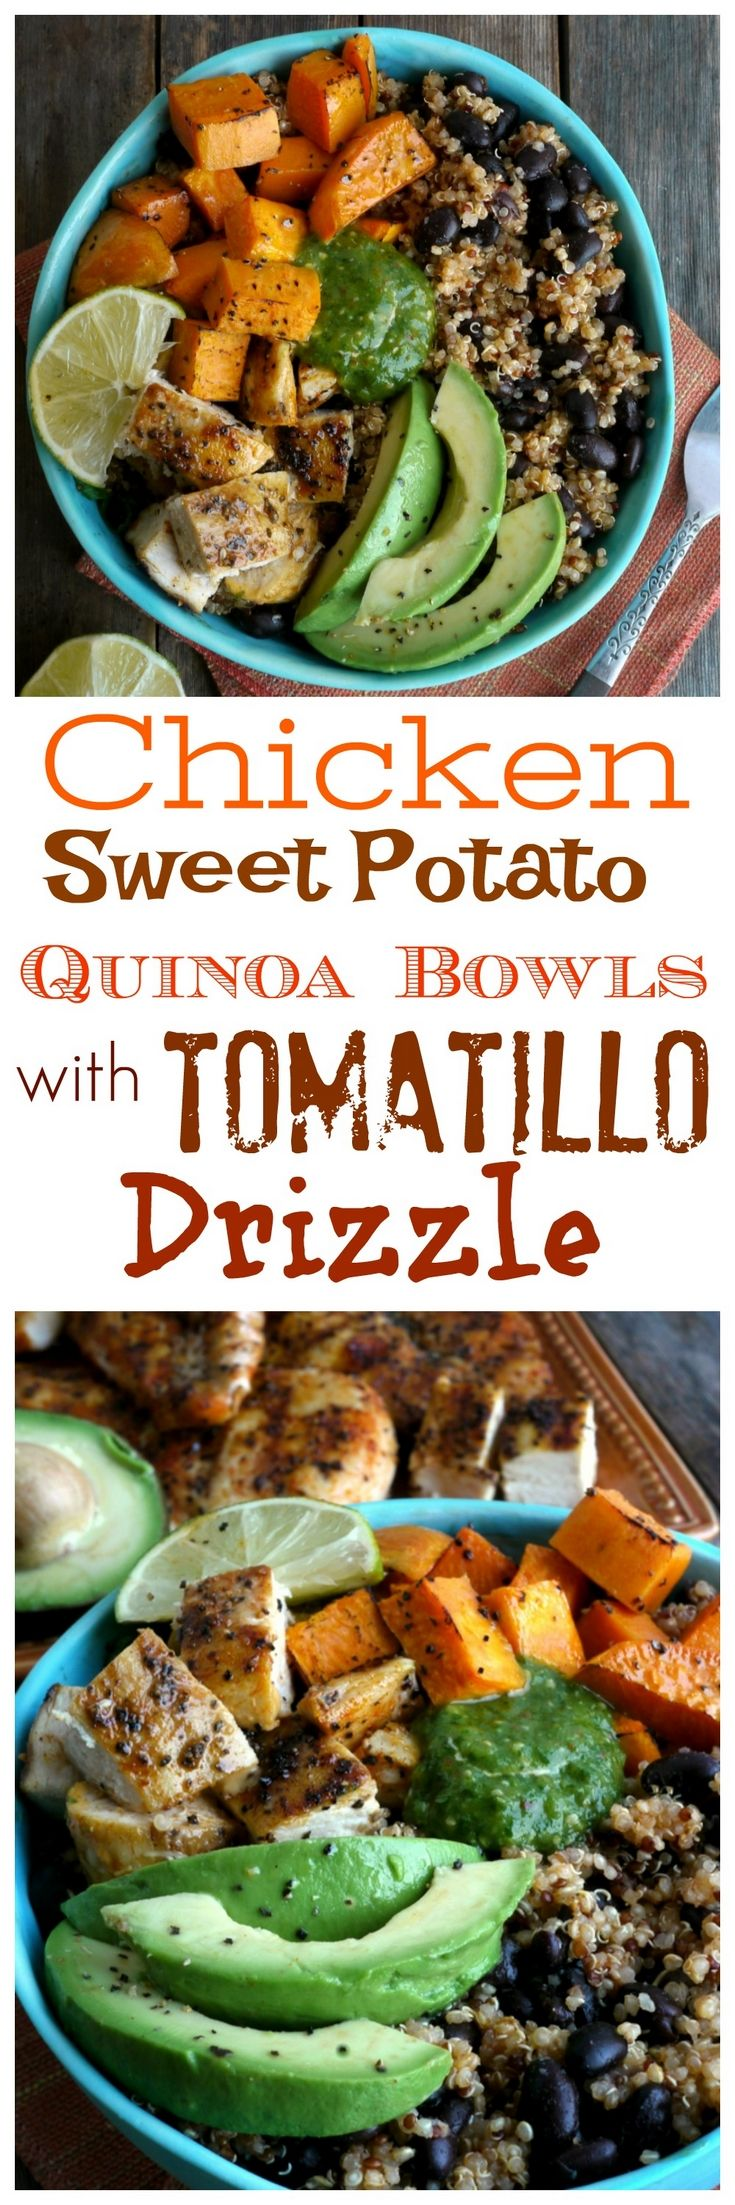 Chicken, Sweet Potato and Quinoa Bowl with Roasted Tomatillo Drizzle